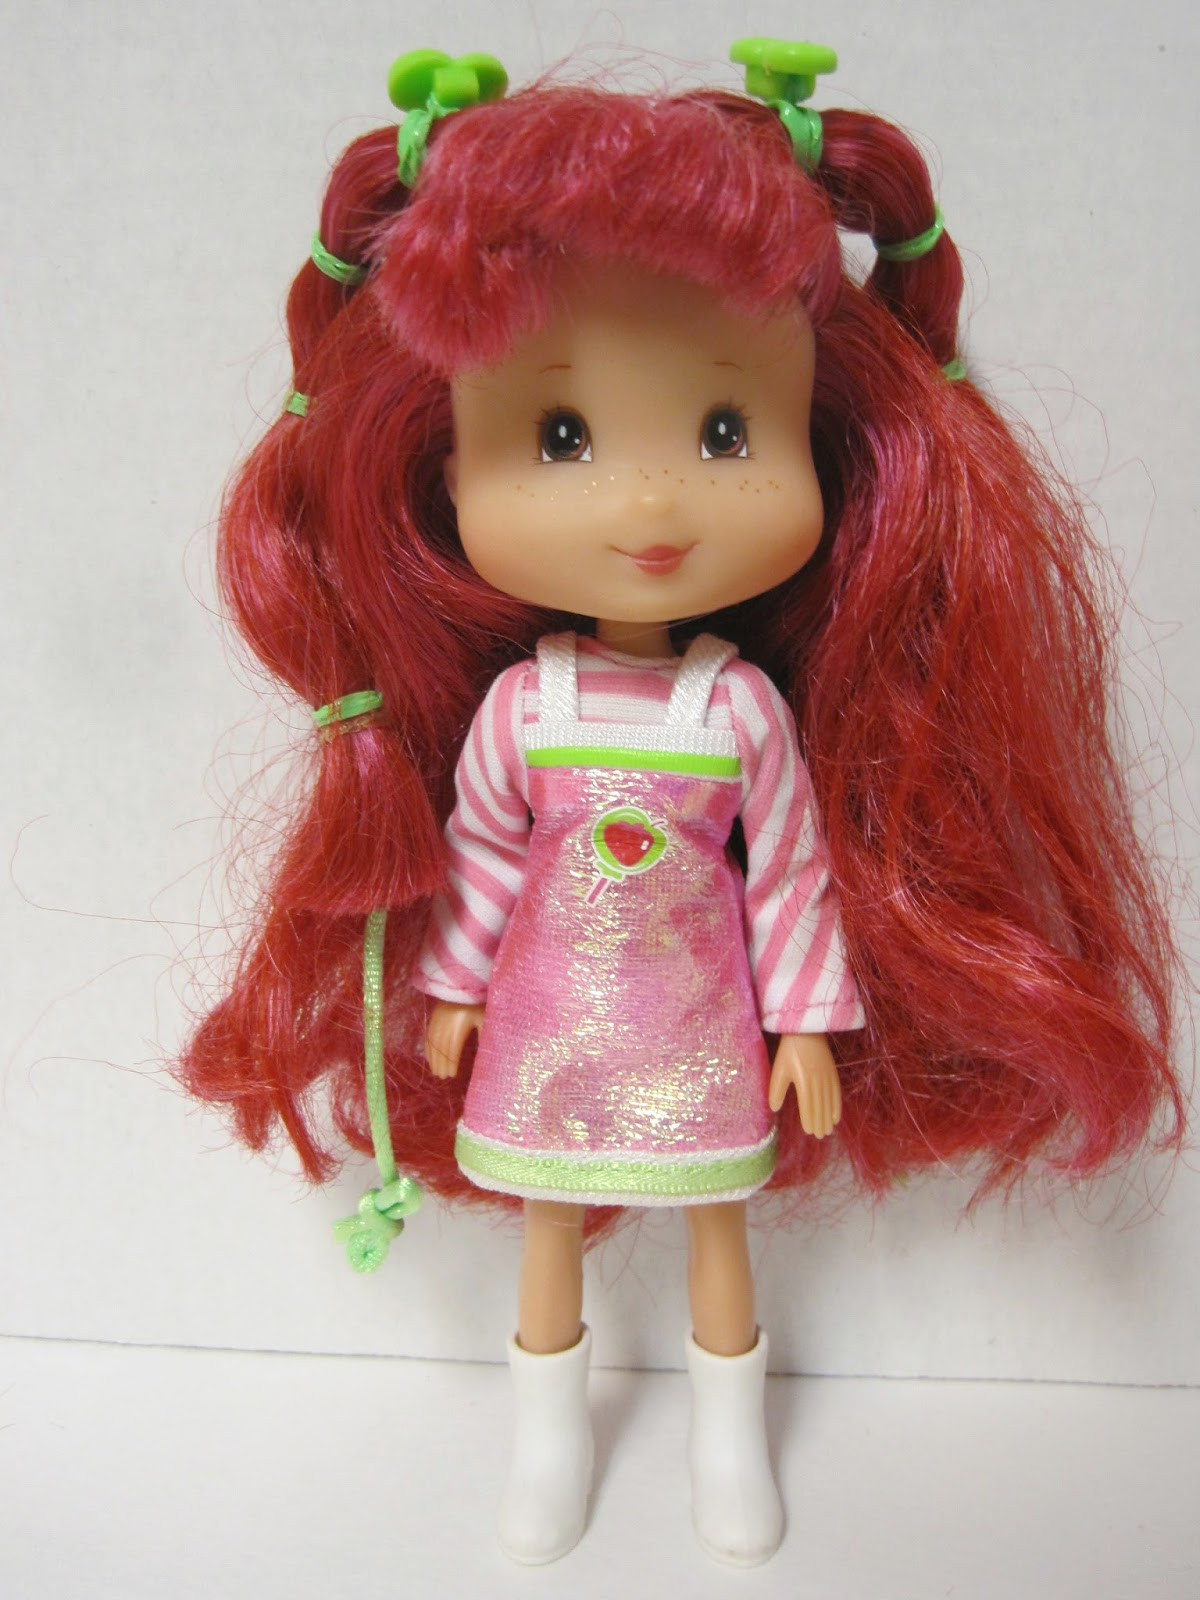 Strawberry Shortcake Doll  Never Grow Up A Mom s Guide to Dolls and More Strawberry